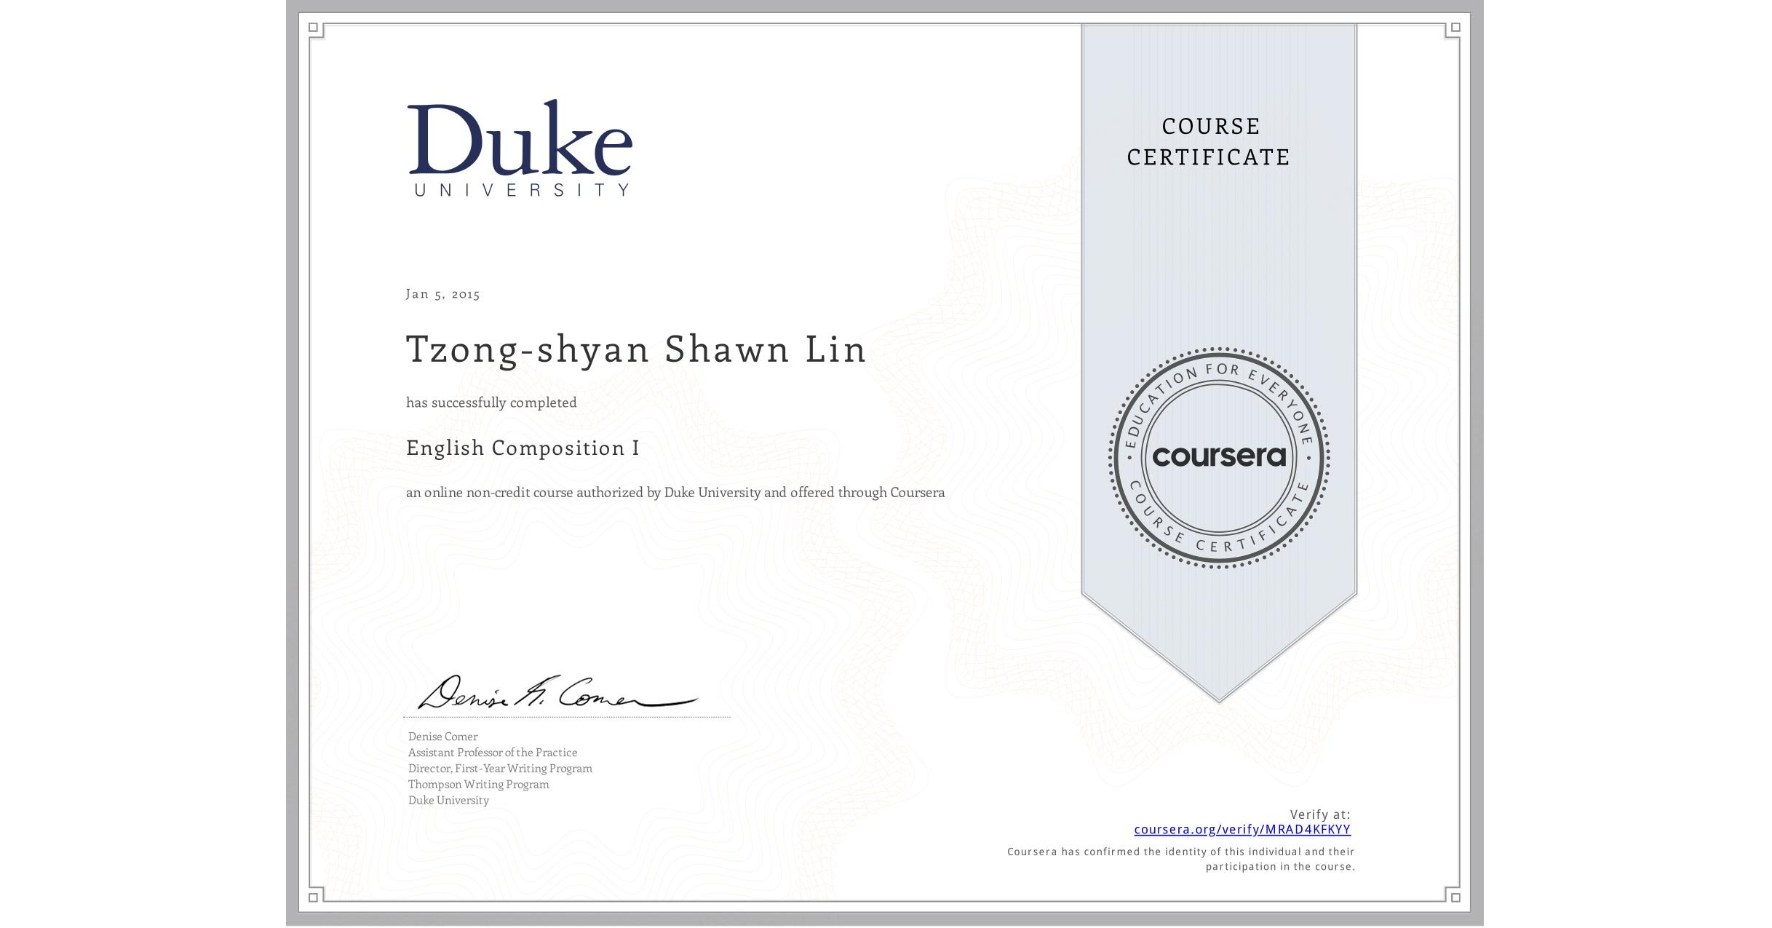 View certificate for Tzong-shyan Shawn Lin, English Composition I, an online non-credit course authorized by Duke University and offered through Coursera